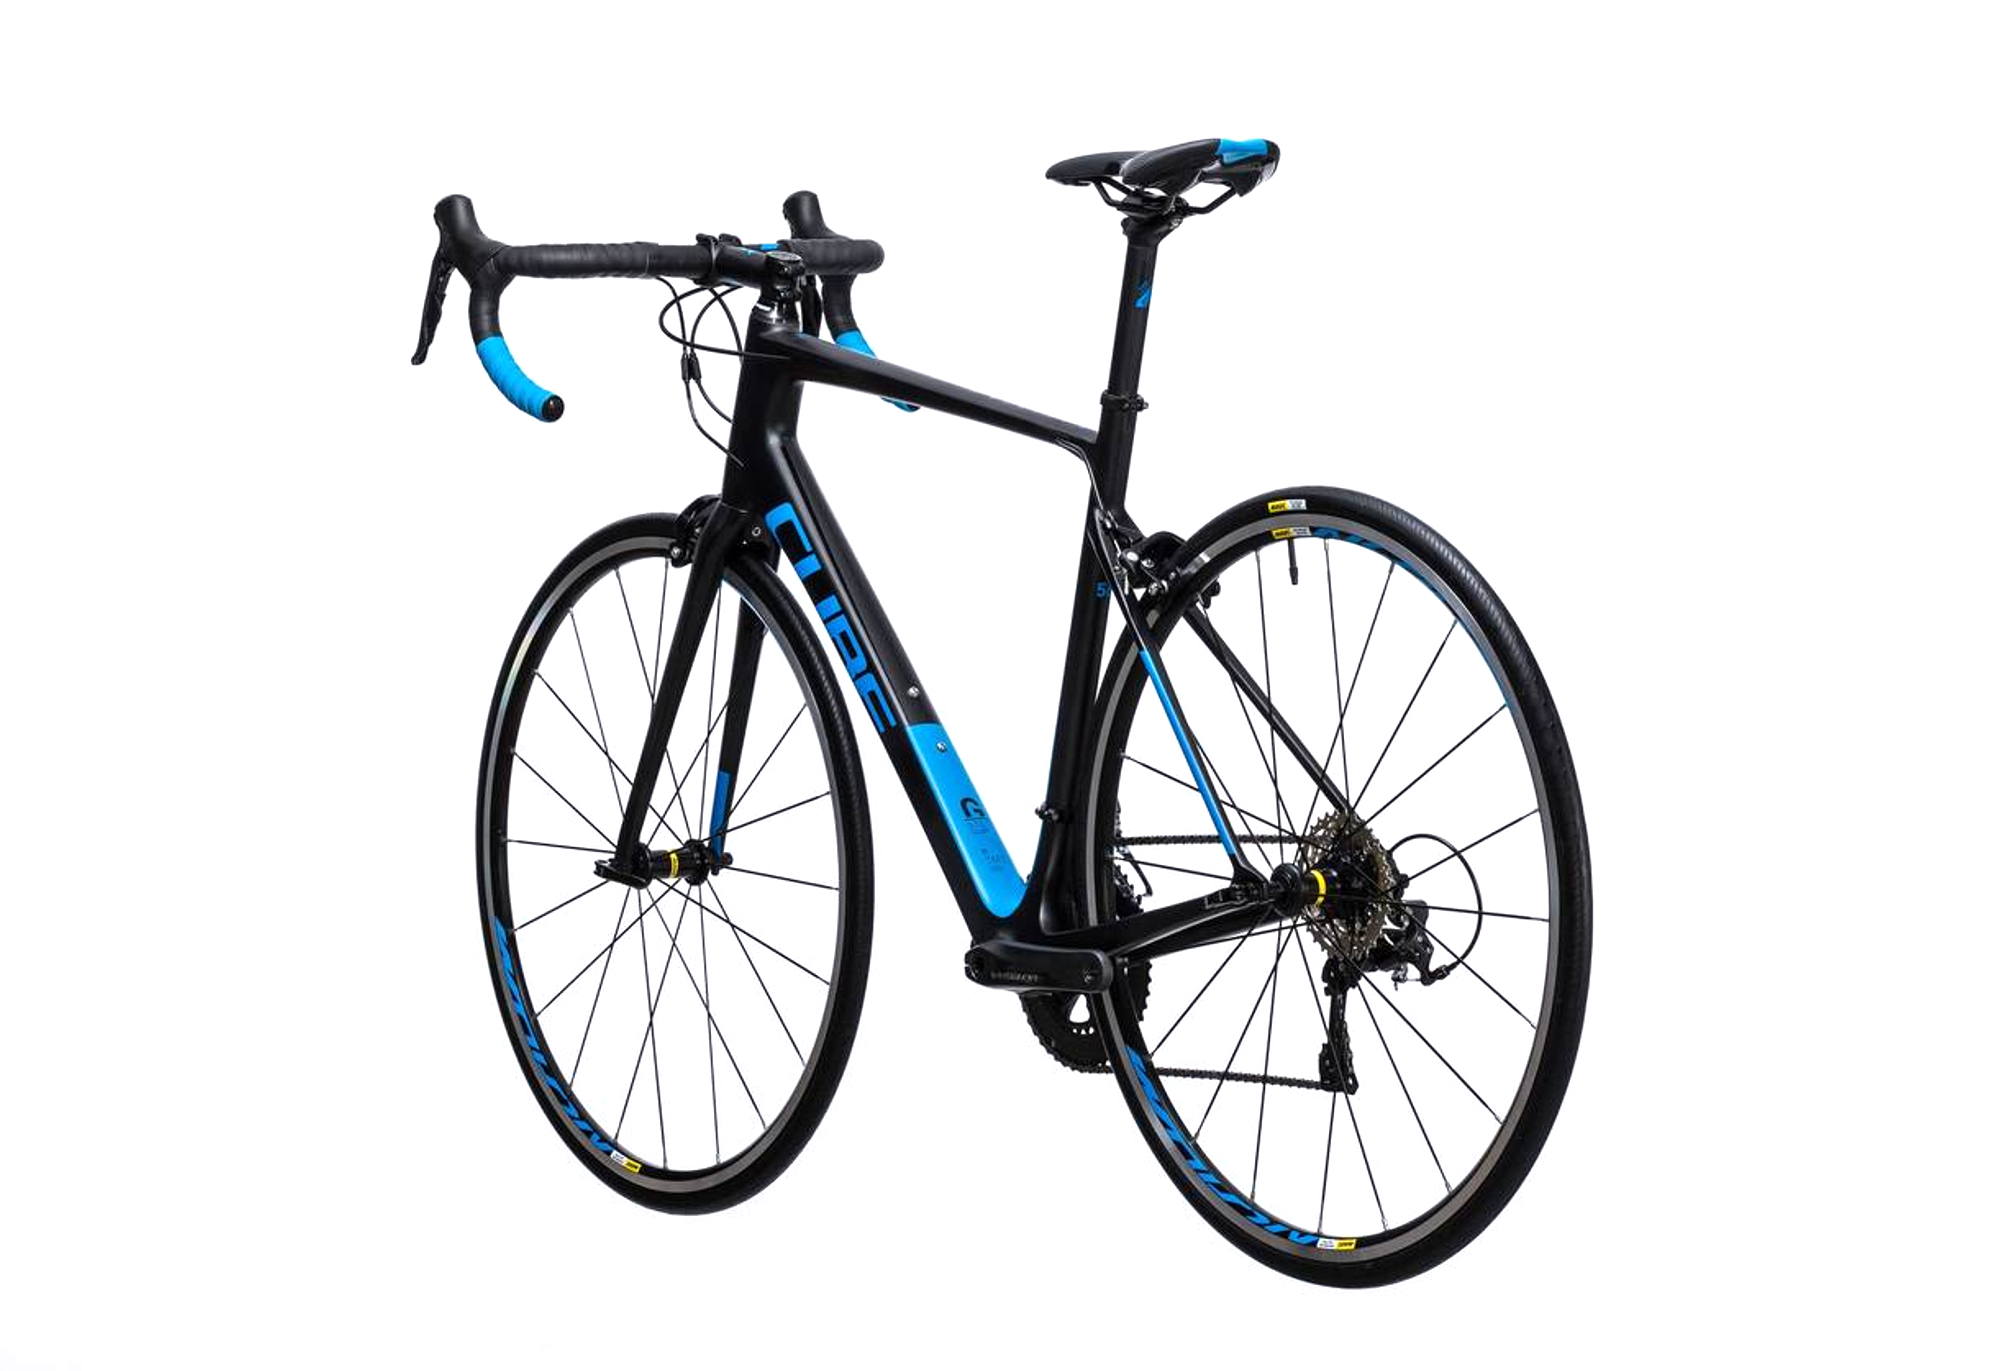 rennrad cube 2017 attain gtc race carbon shimano ultegra. Black Bedroom Furniture Sets. Home Design Ideas